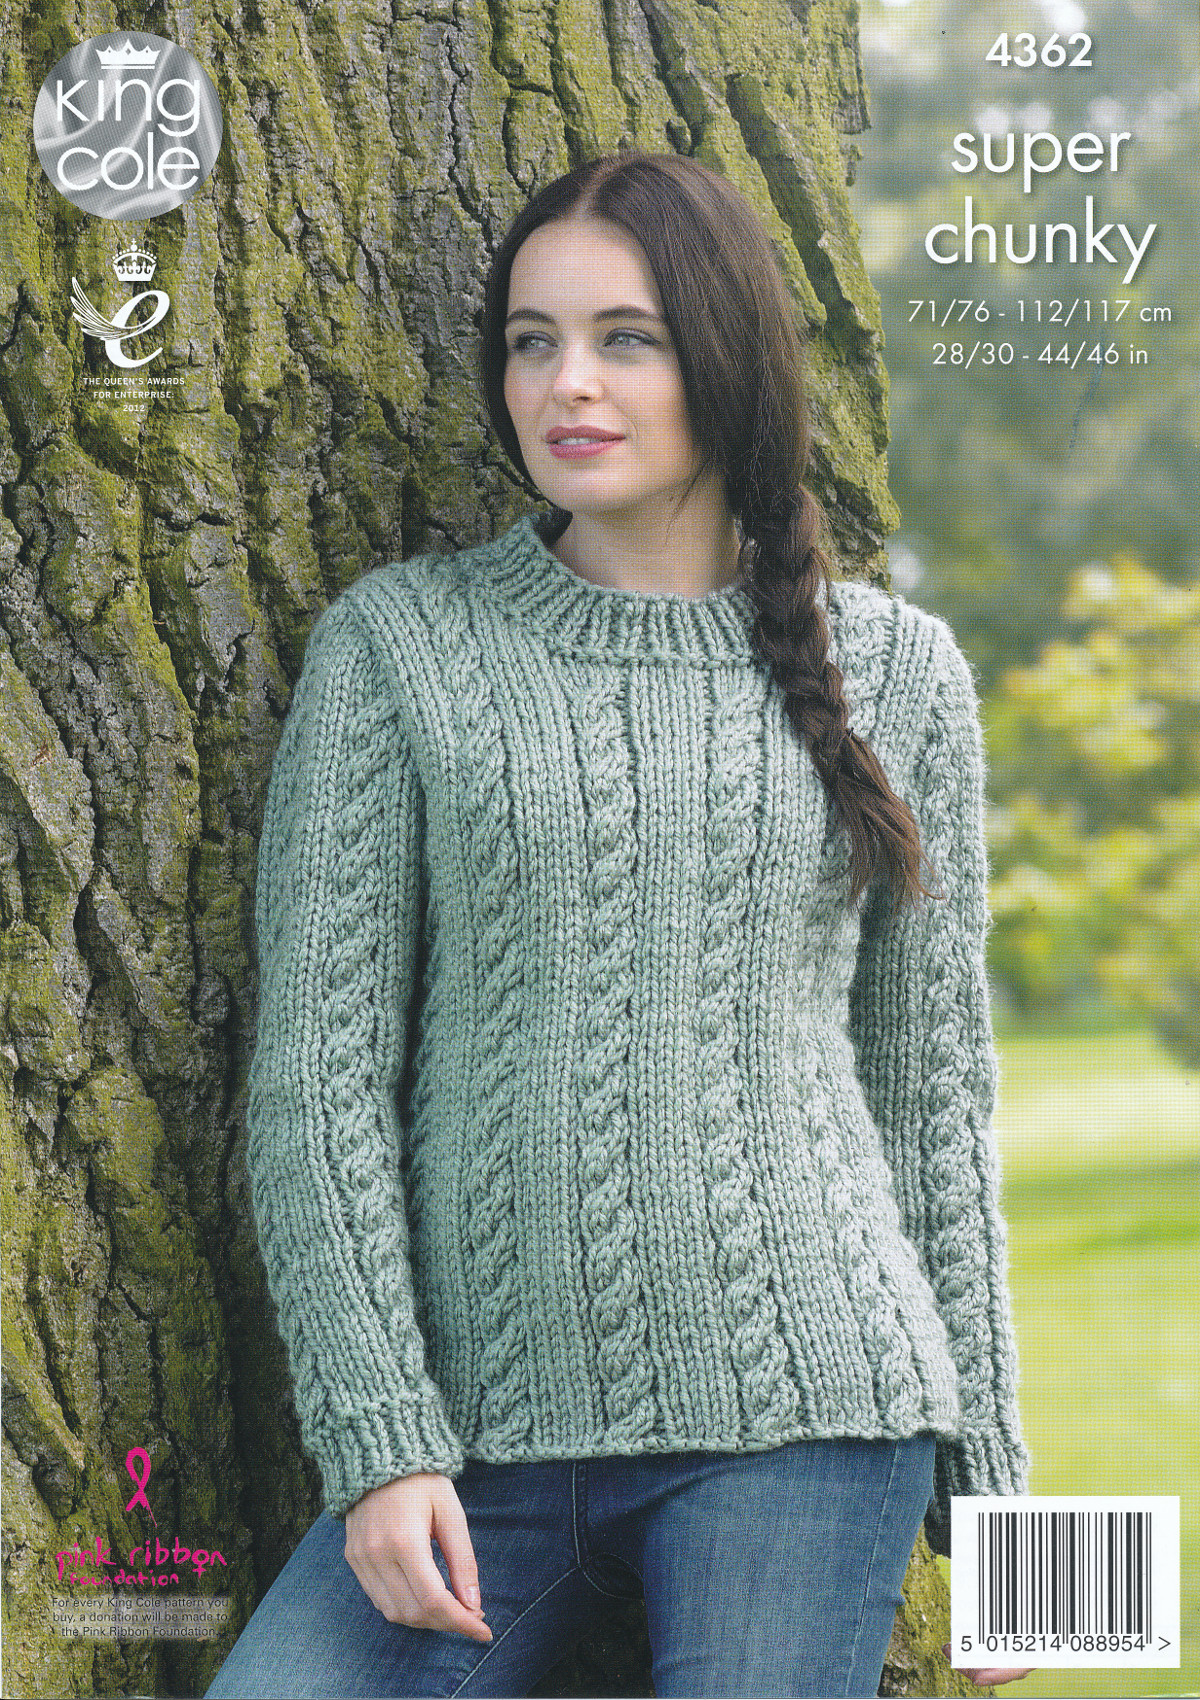 Super Chunky Jumper Knitting Pattern : Ladies Super Chunky Knitting Pattern King Cole Cable Knit Jumper Waistcoat 43...